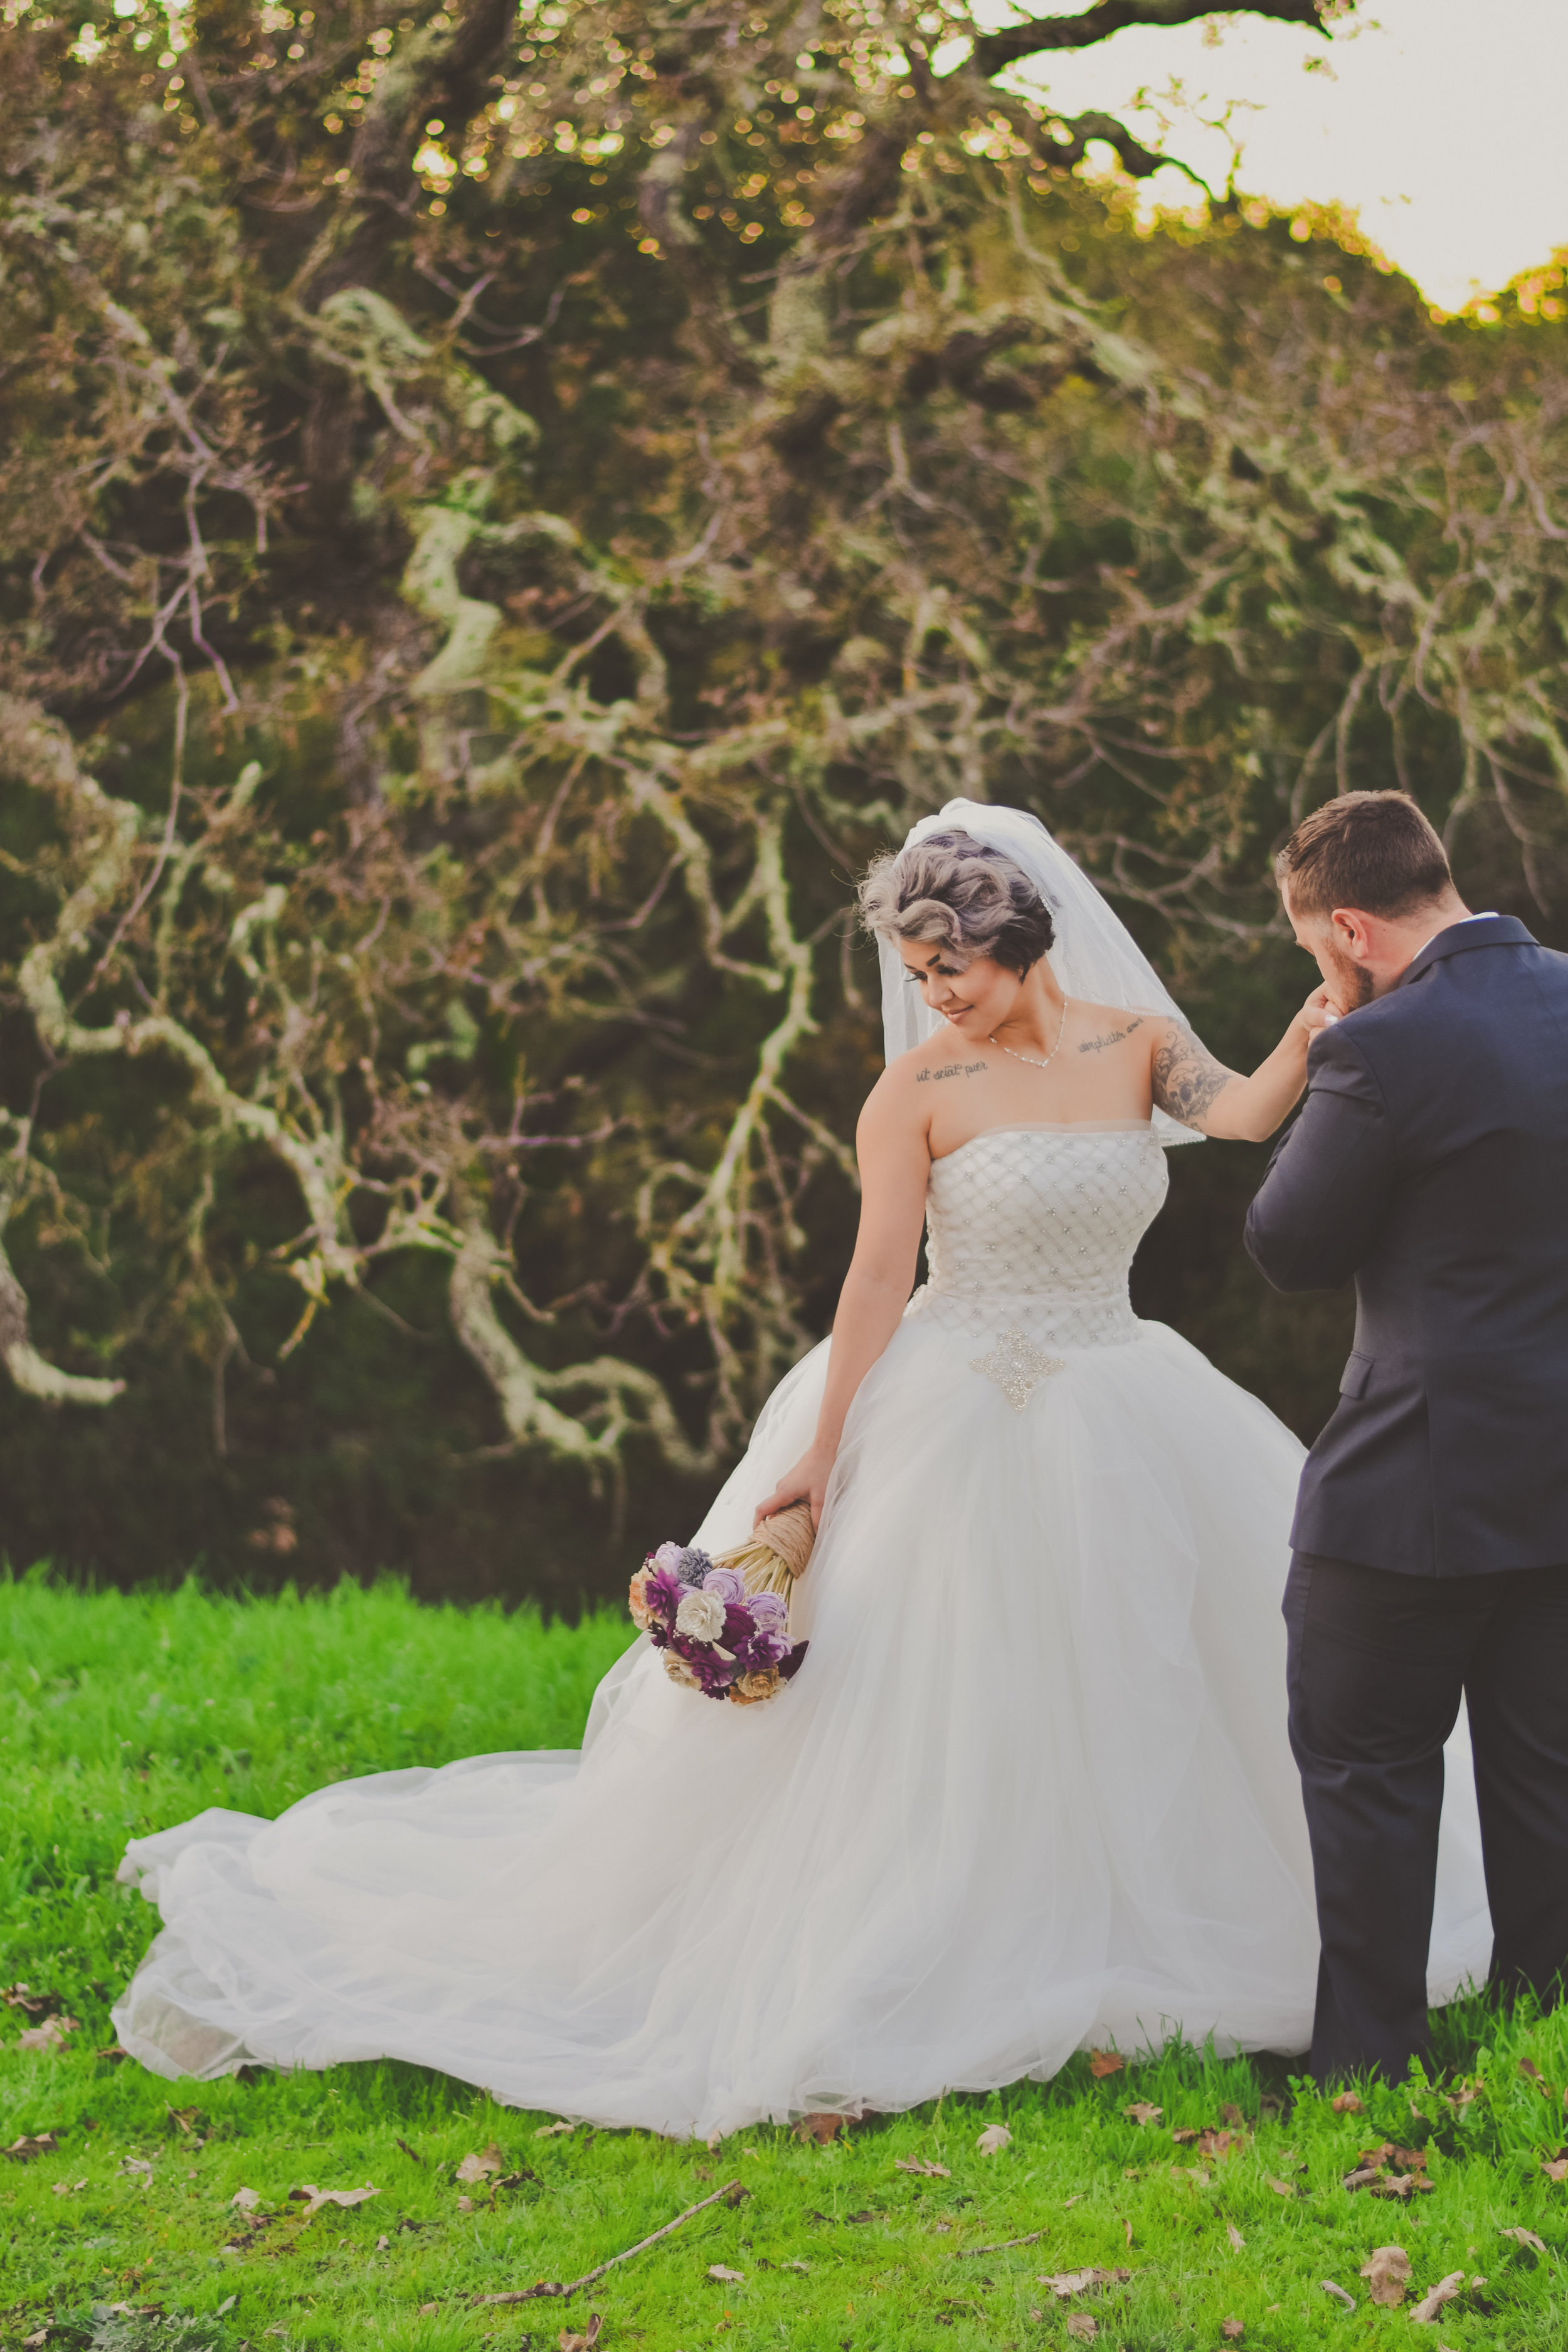 Bride & Groom-19.jpg